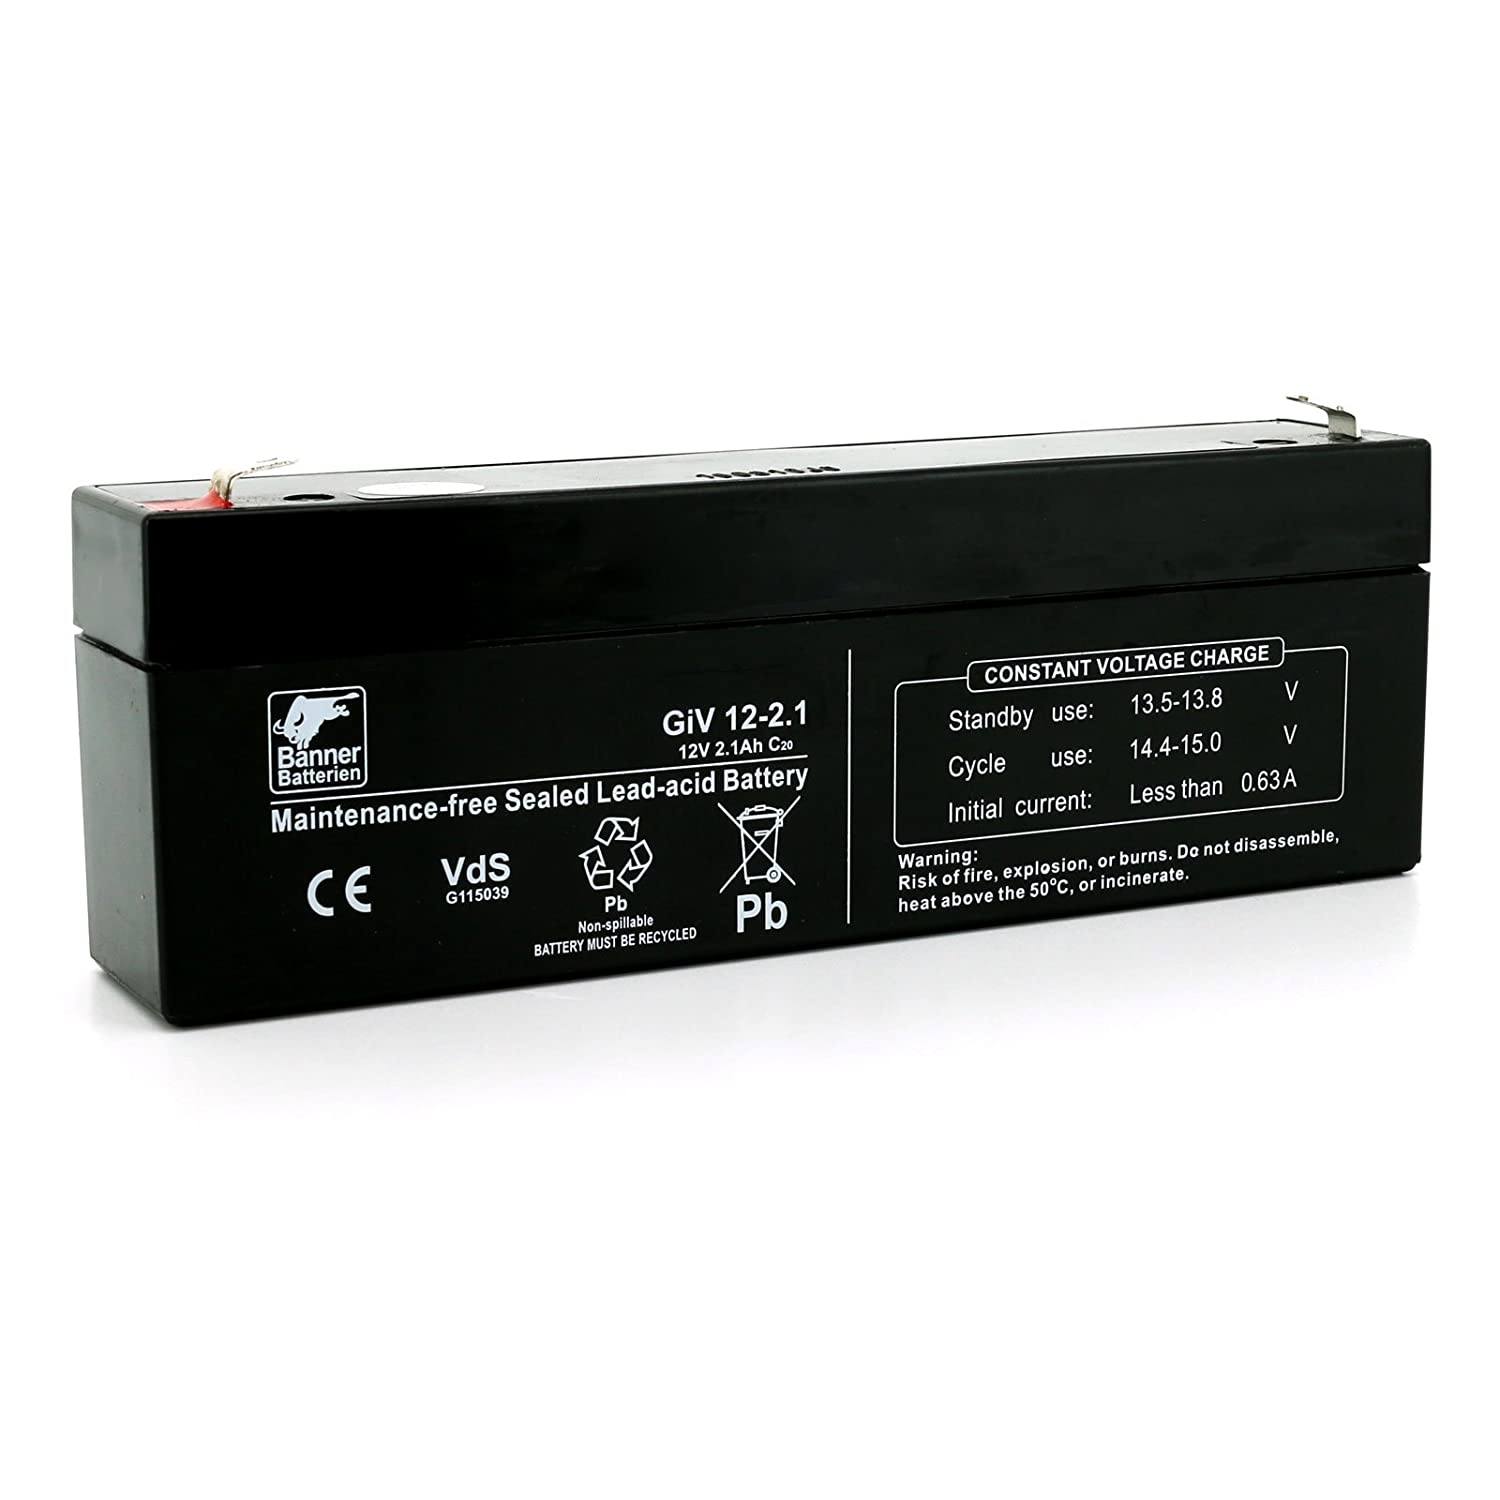 Banner Batterie Stand by Bull 12 Volt/2,1Ah Typ GiV 12-2.1